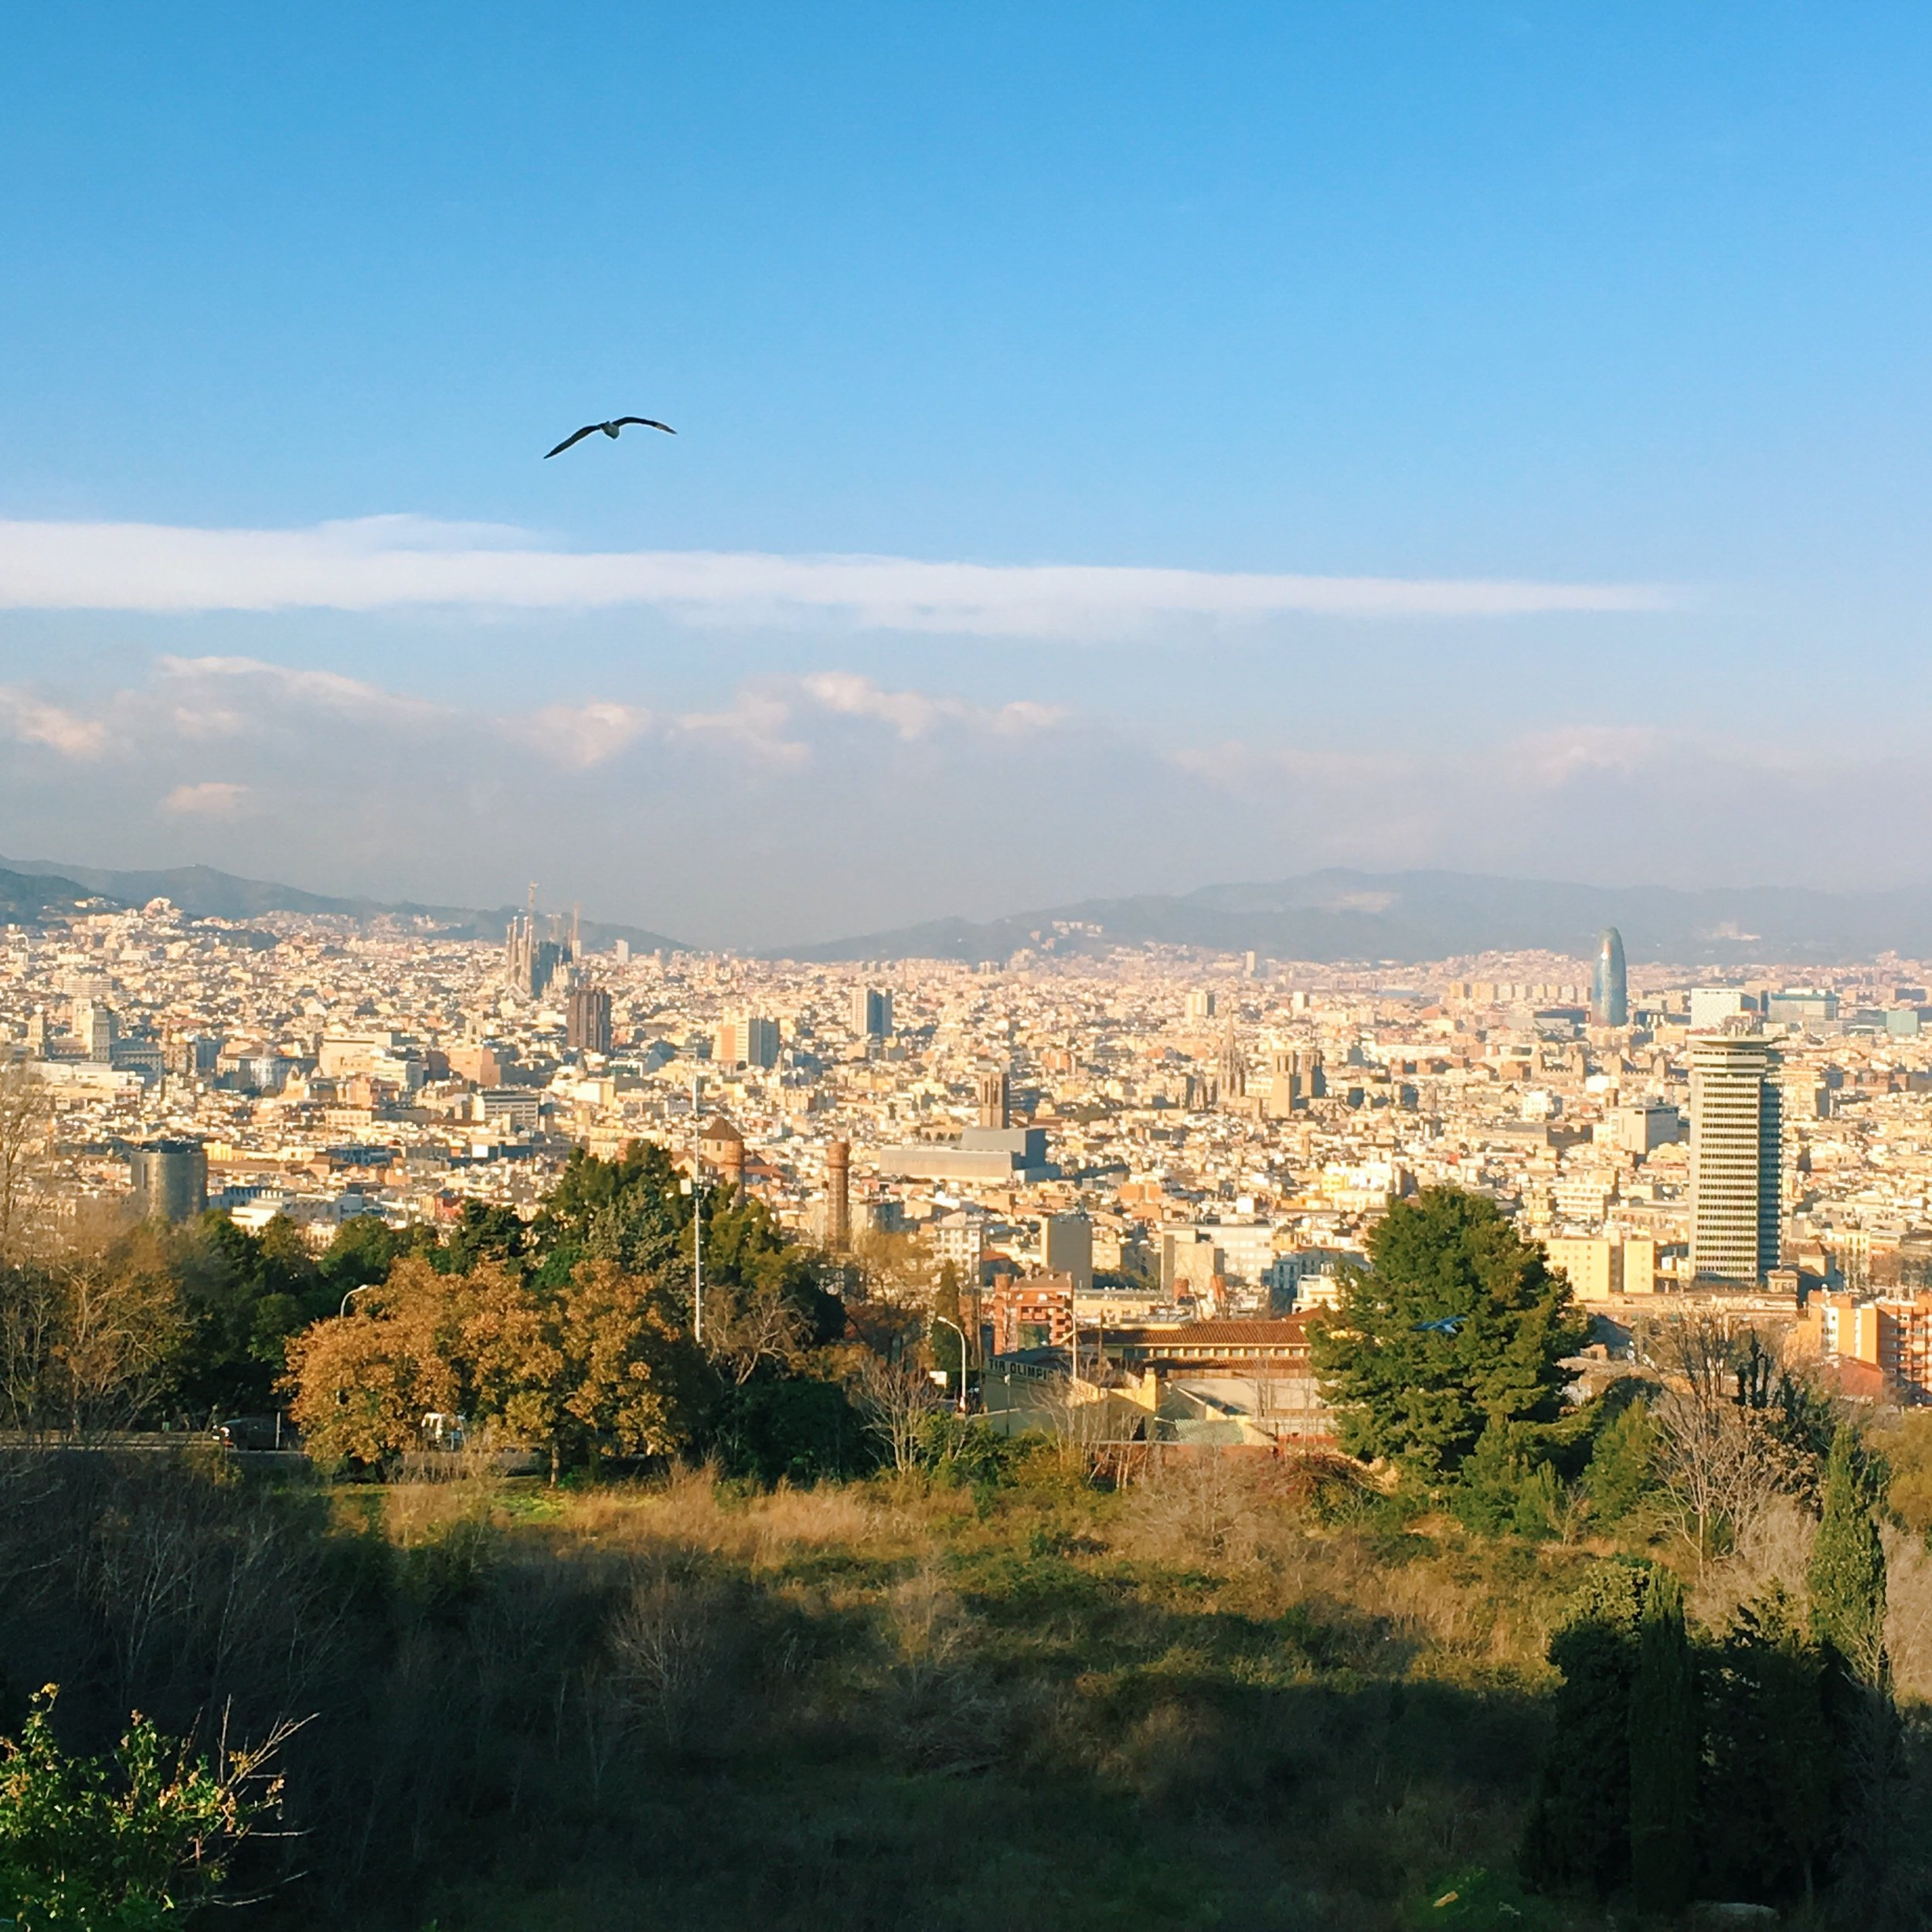 View of the city from Montjuic Castle.